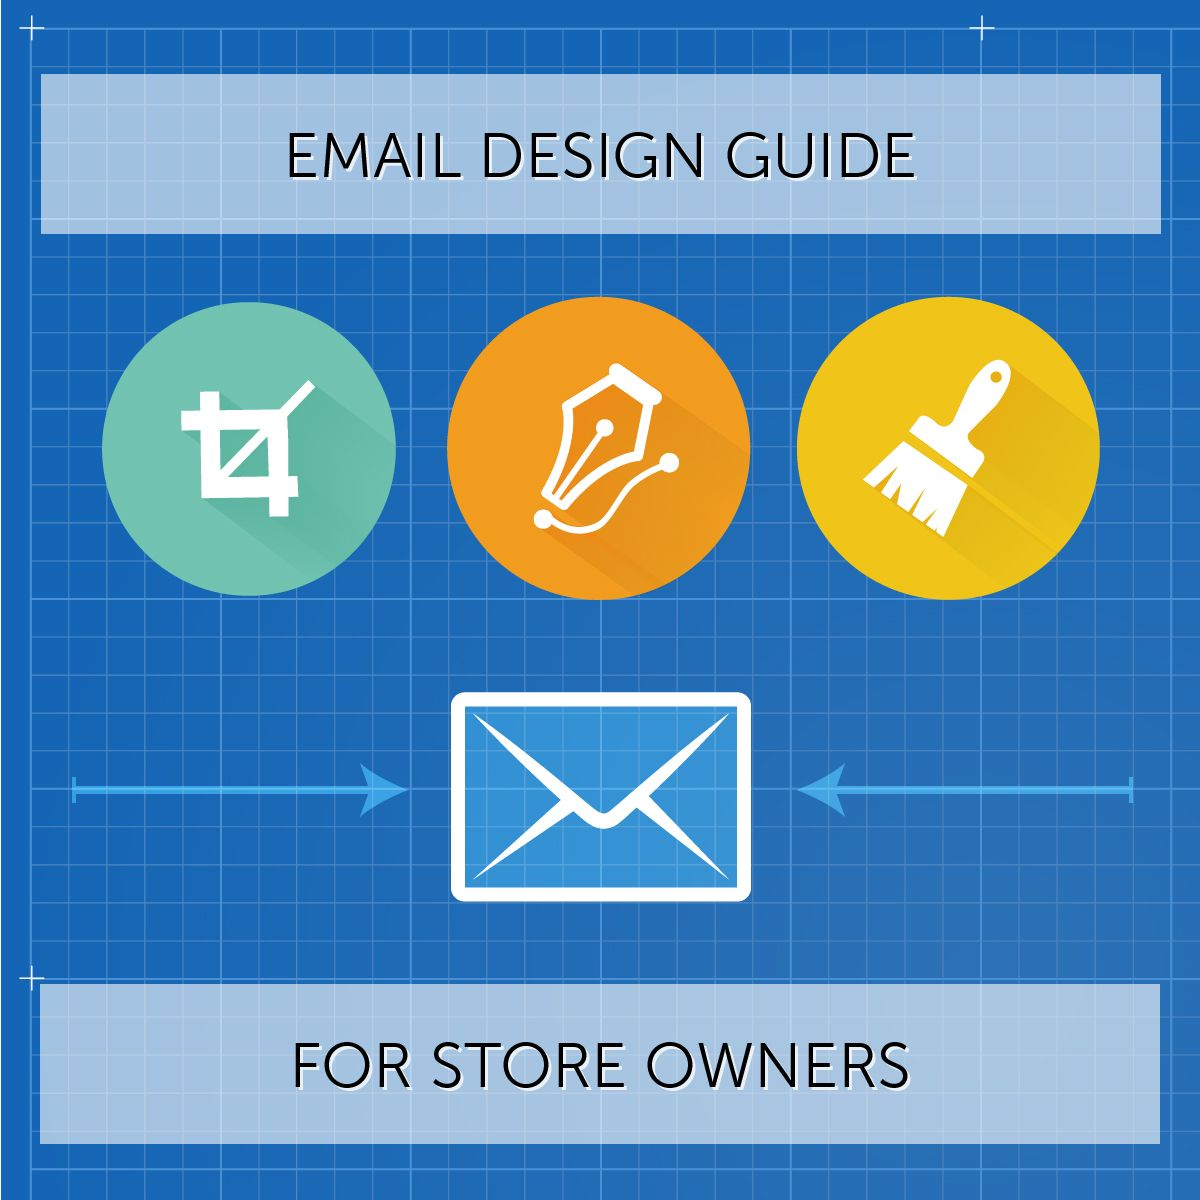 Wow customers with your emails! Download a FREE email design guide for store owners here: http://www.snapretail.com/Promotional/Content/EmailDesignGuide?utm_campaign=2014contentmarketing&utm_source=sr&utm_medium=pinterest&utm_content=guide_emaildesign